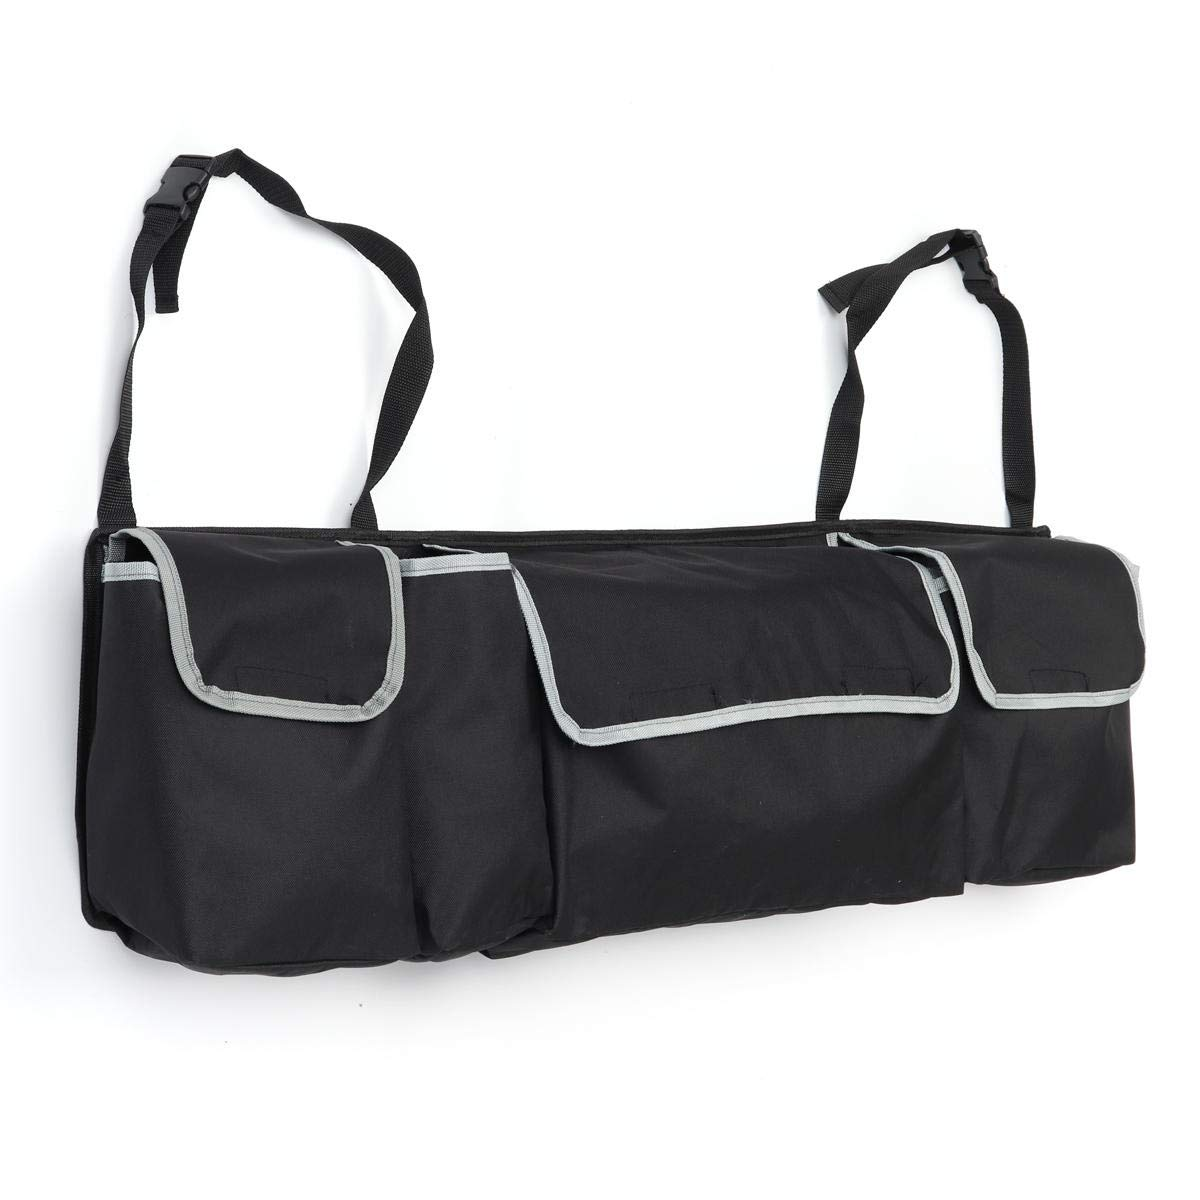 F.S.M. Outdoor Travel Car Seat Back Storage Bag Hanging Pack Pouch Rear Trunk Organizer by F.S.M.